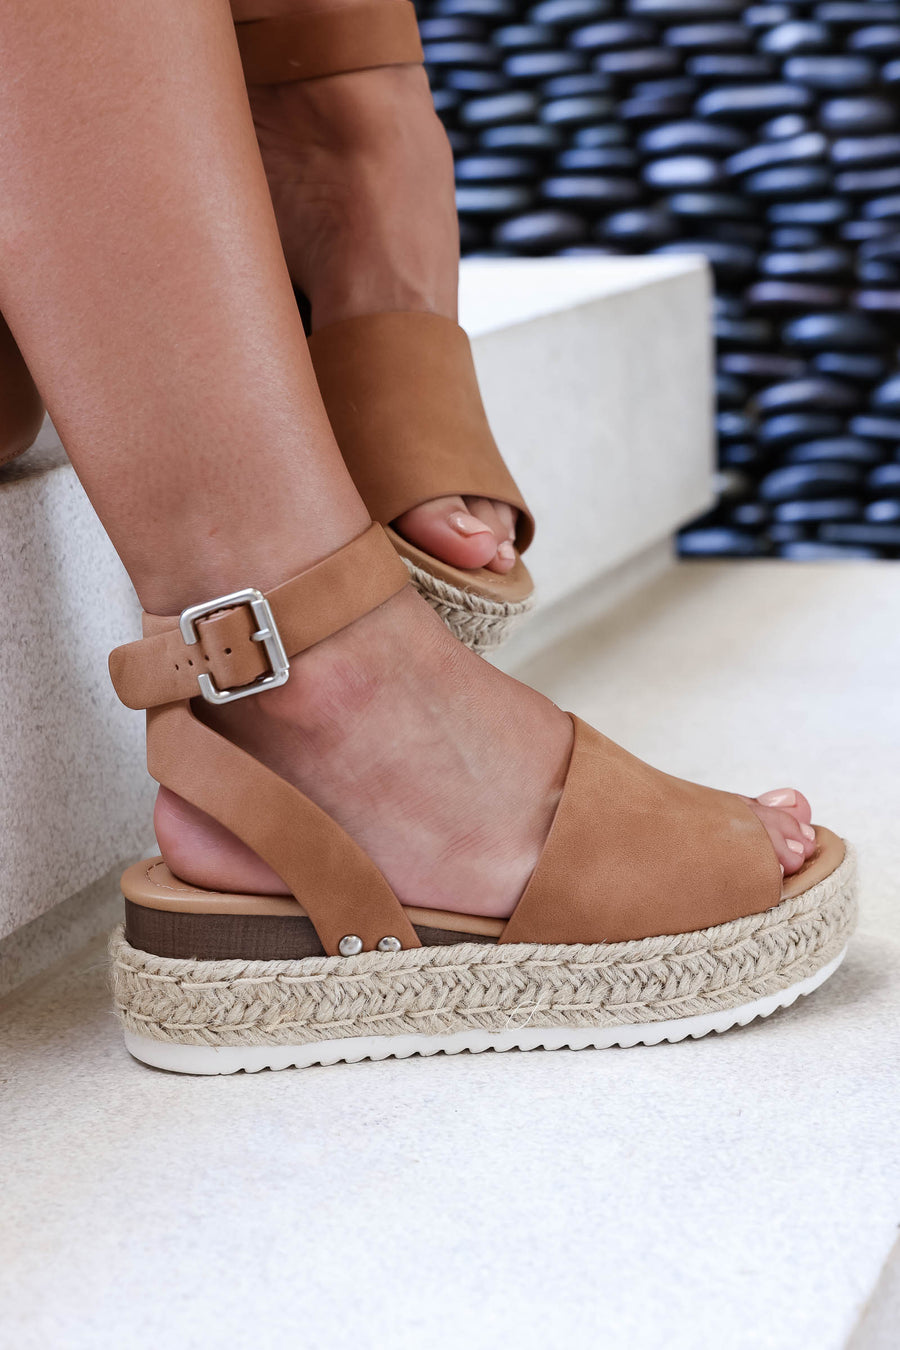 Vitamin Sea Espadrille Sandals - Tan closet candy women's trendy espadrille platform wedge sandal 1